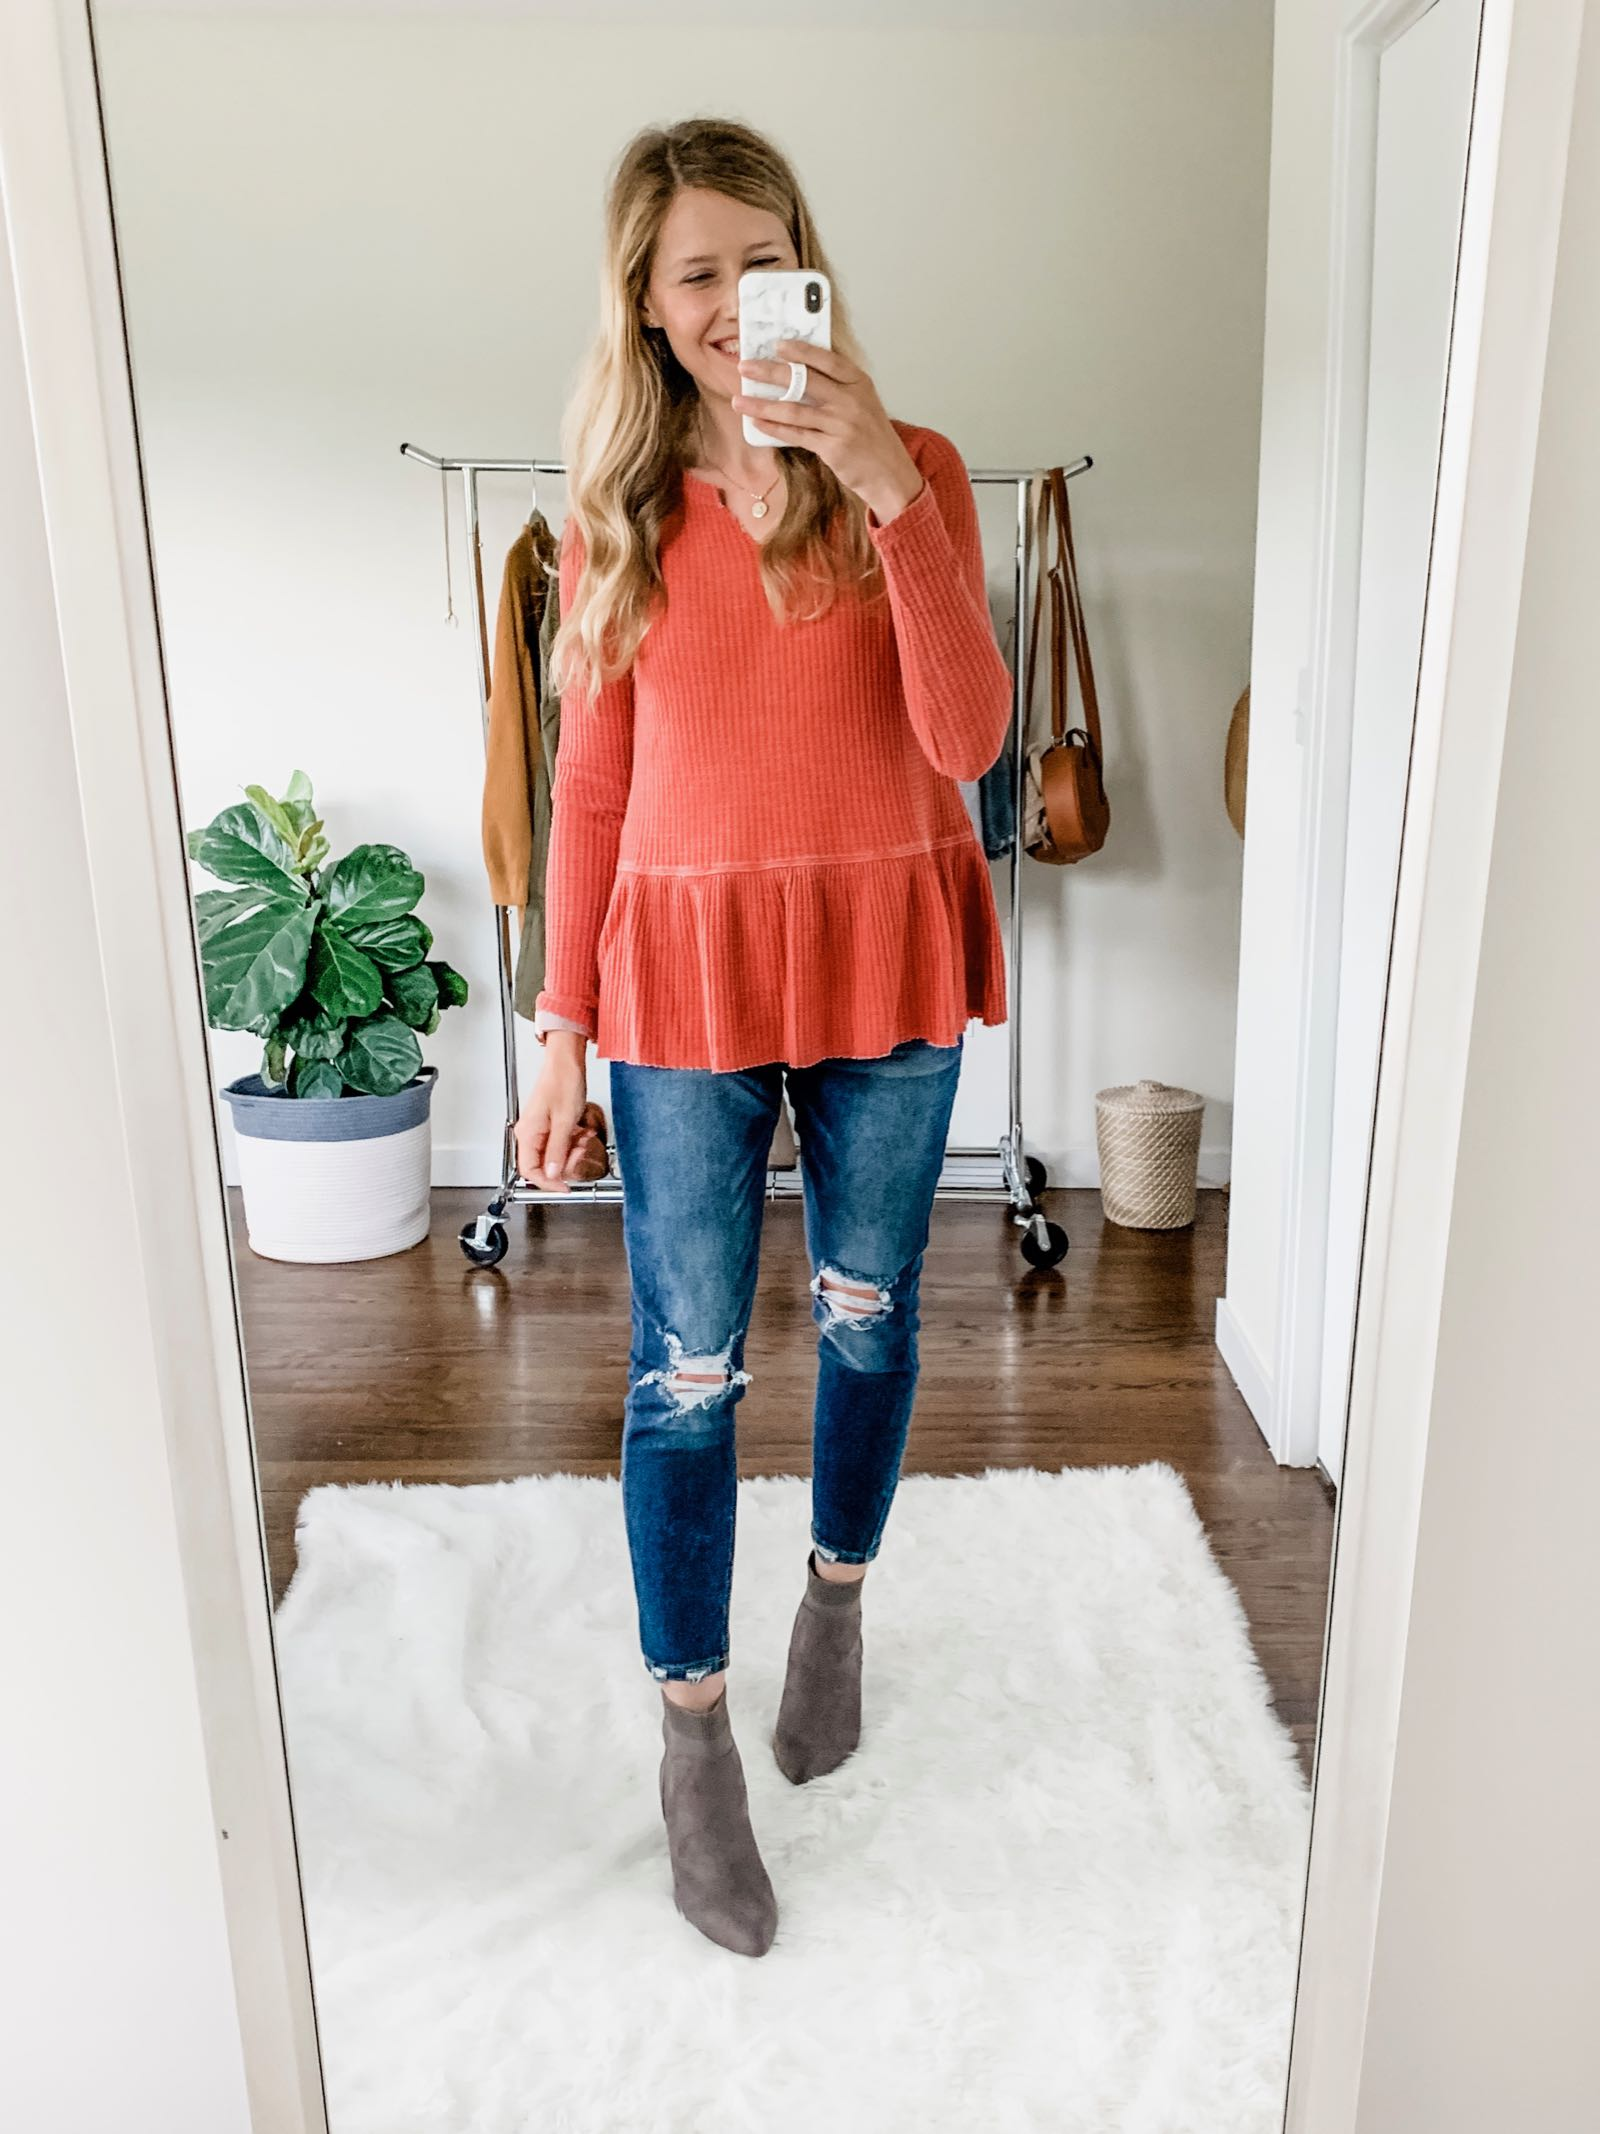 Walmart Fashion Blogger - Affordable Fall Outfit Ideas